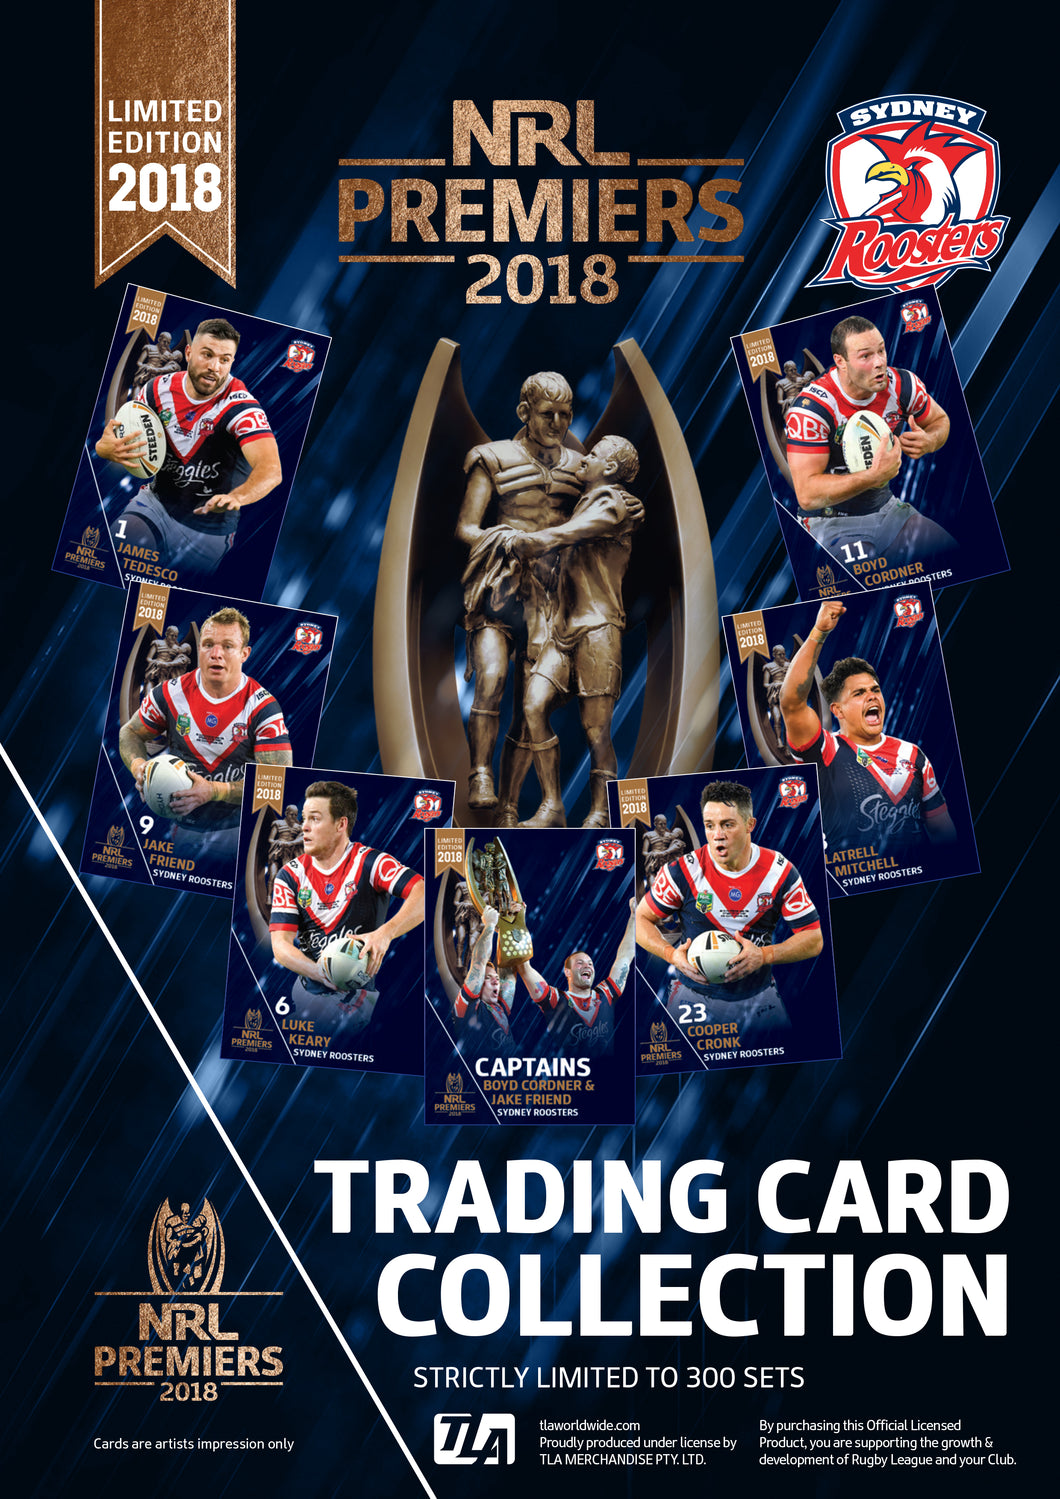 2018 Sydney Roosters Premiers card set